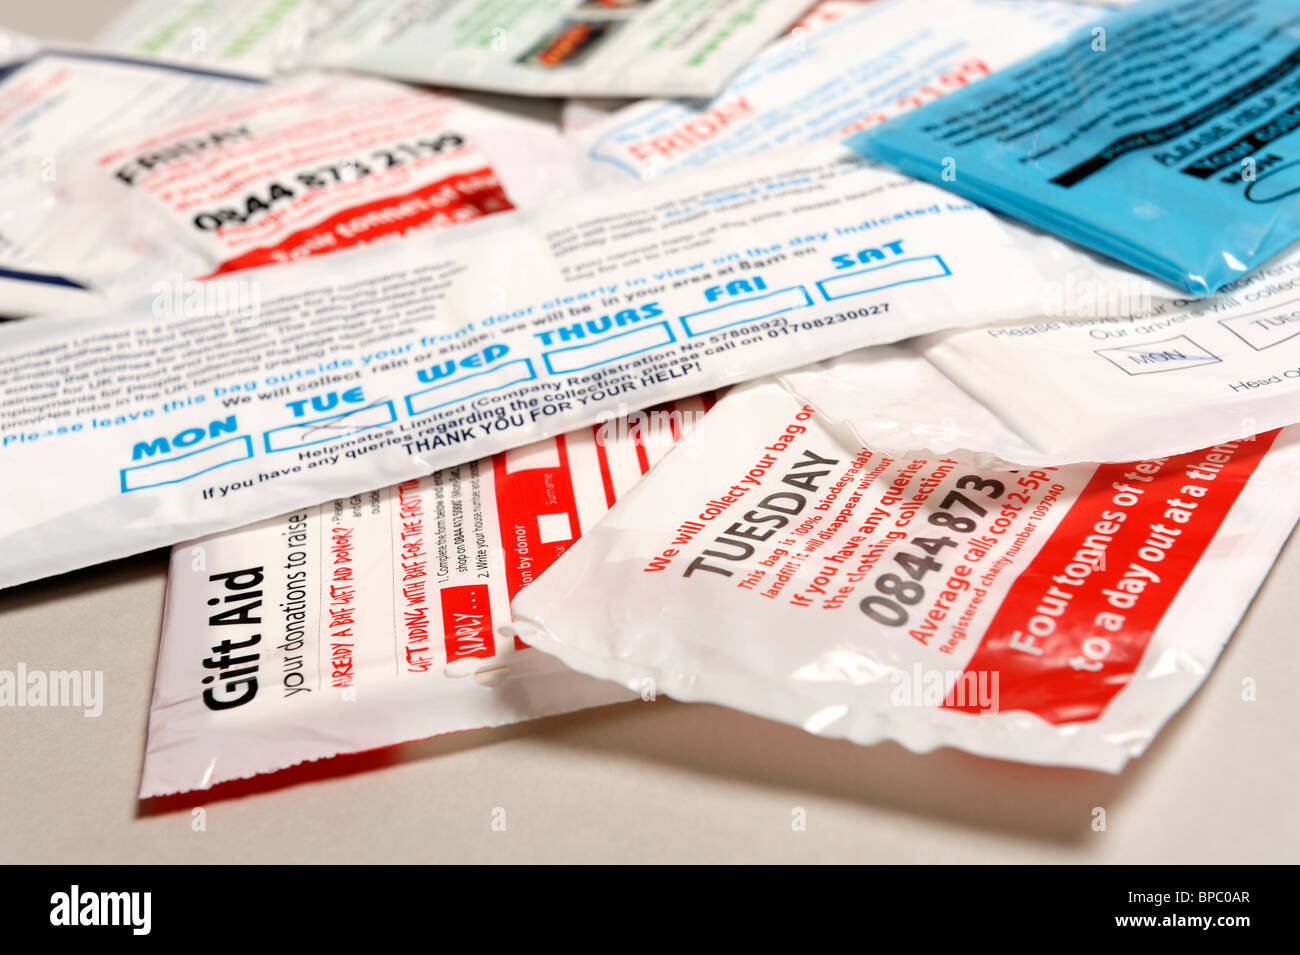 Selection of plastic charity collection bags - Stock Image